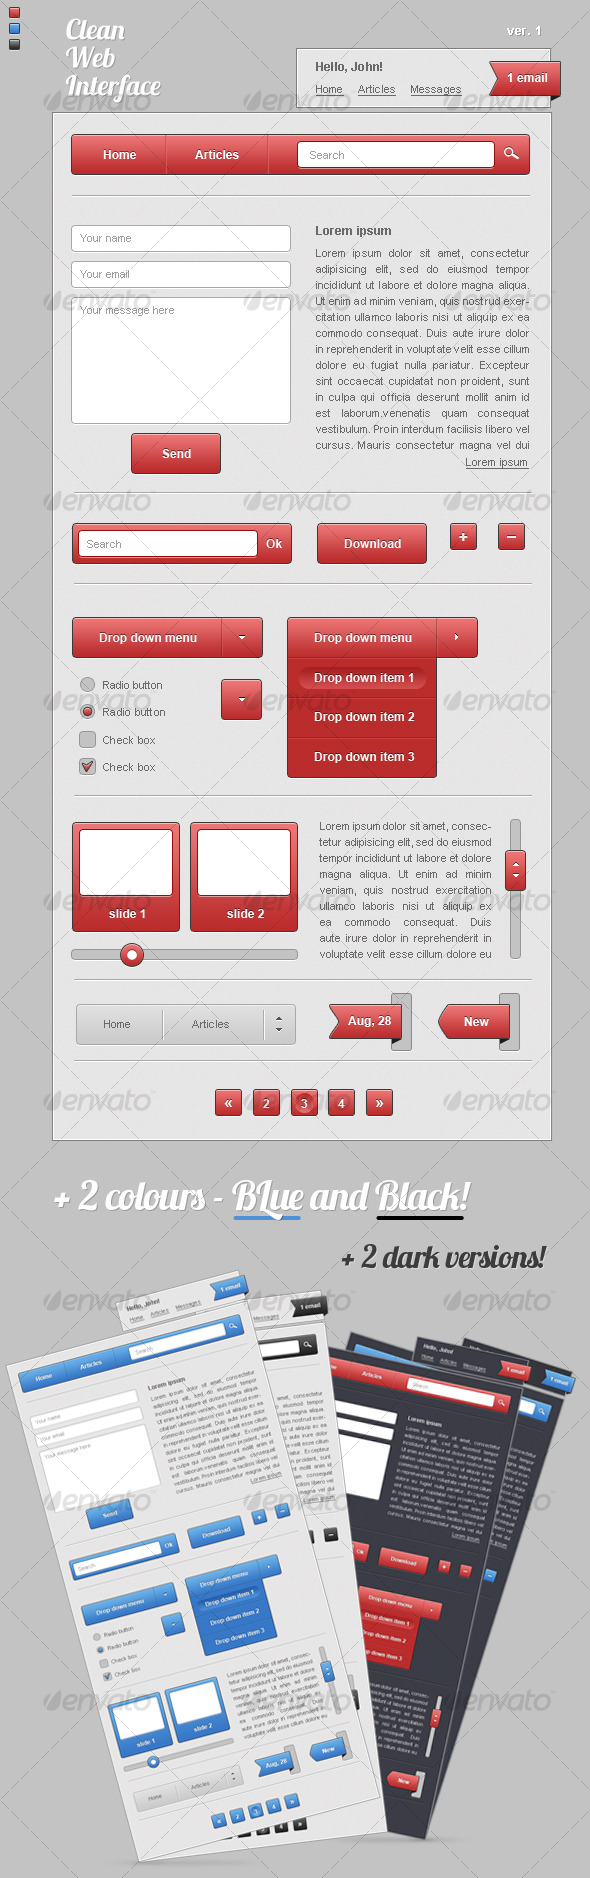 Graphic River Clean Web Interface Web Elements -  User Interfaces 121873